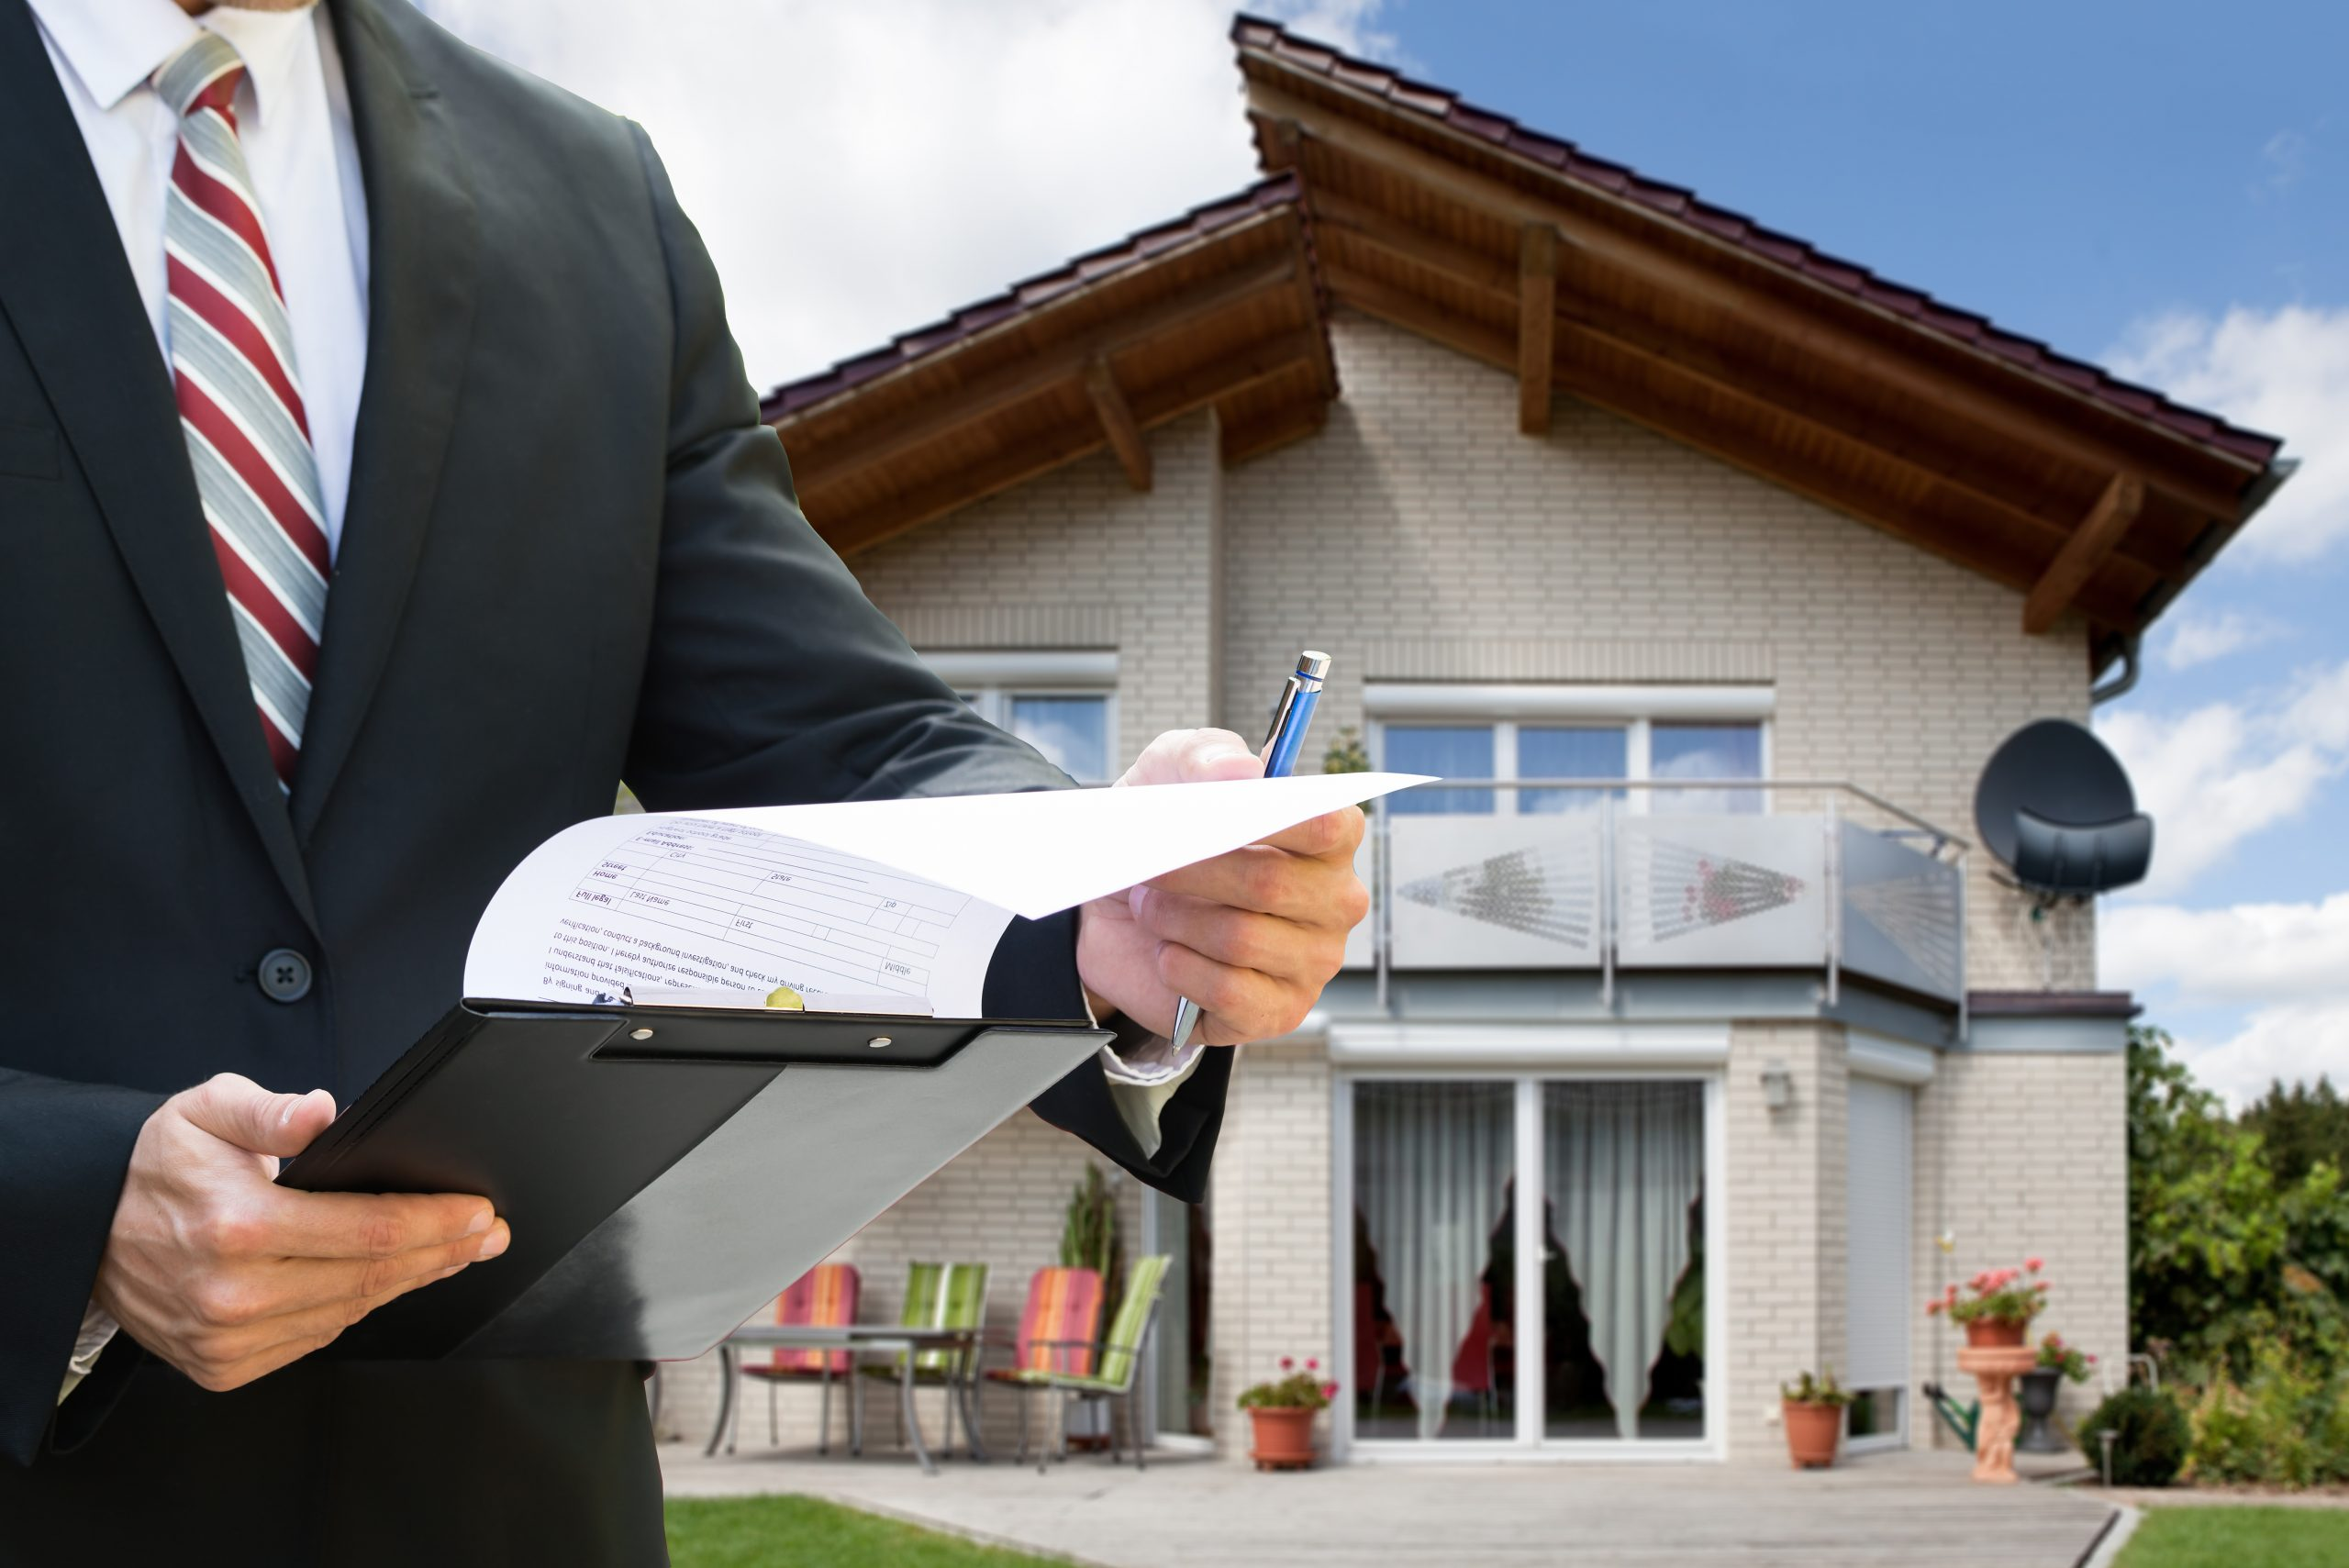 Immobilienbewertung - 100% professionell